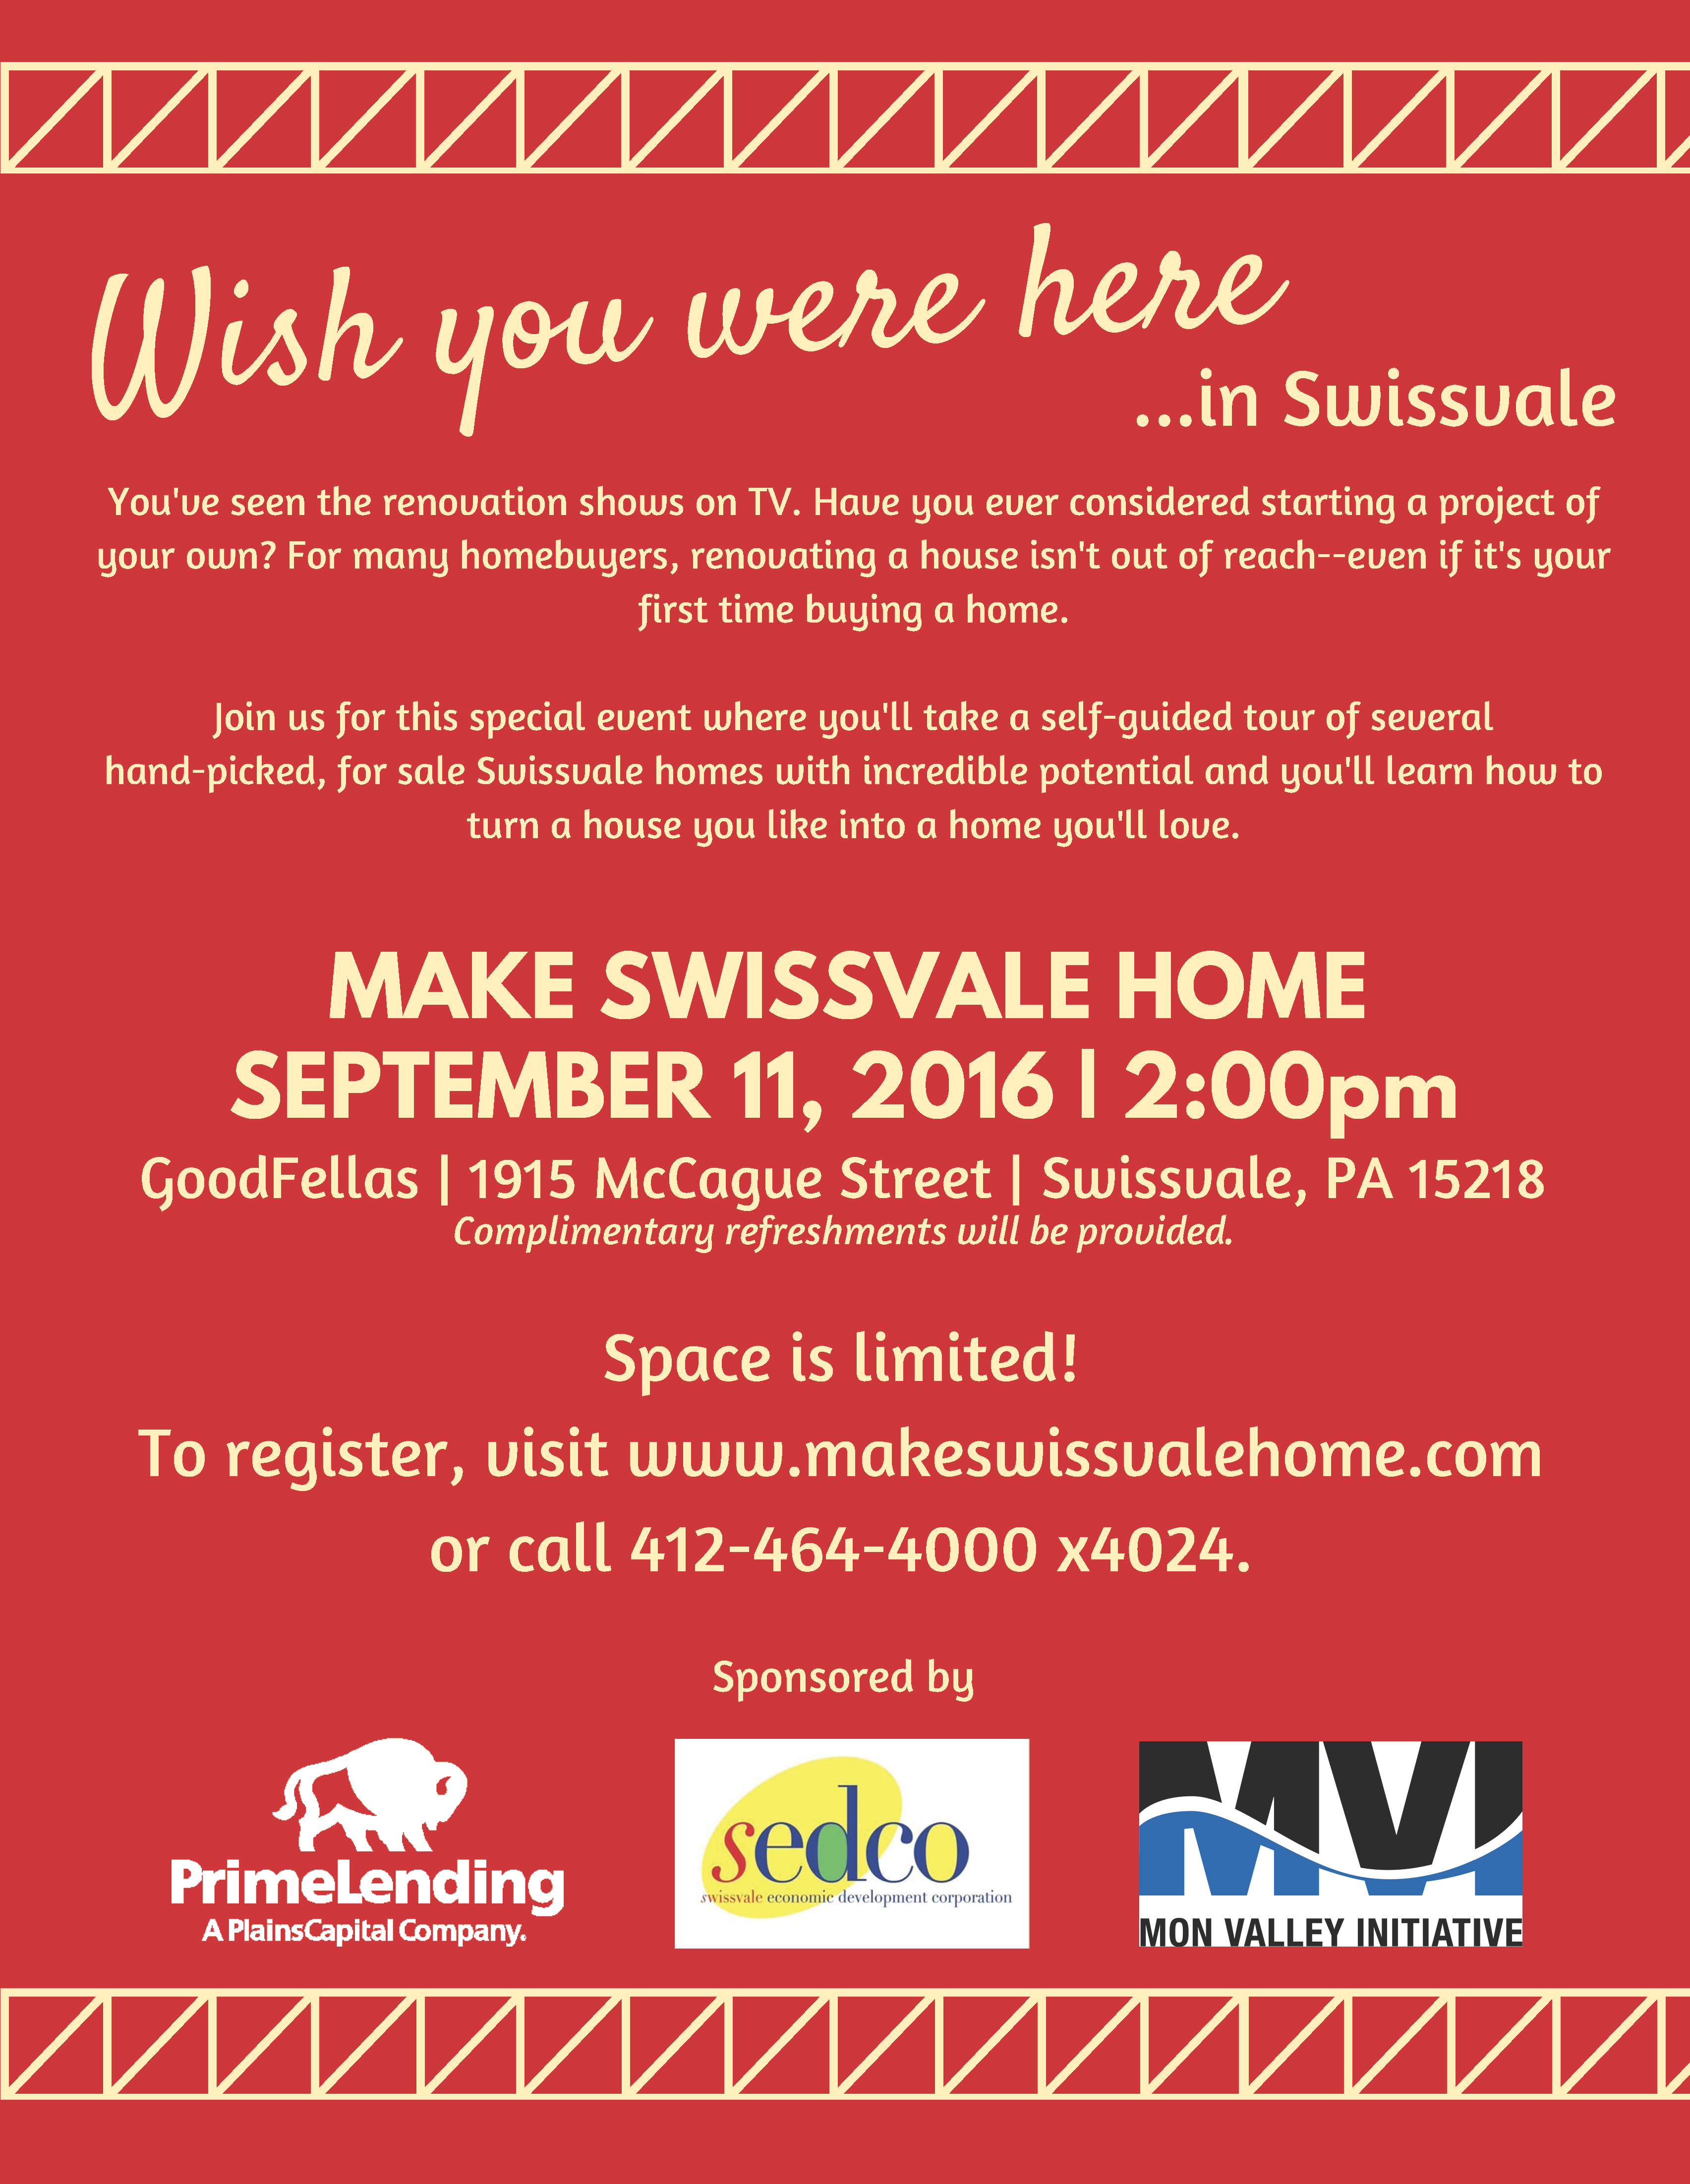 Make Swissvale Home Full Page Flyer